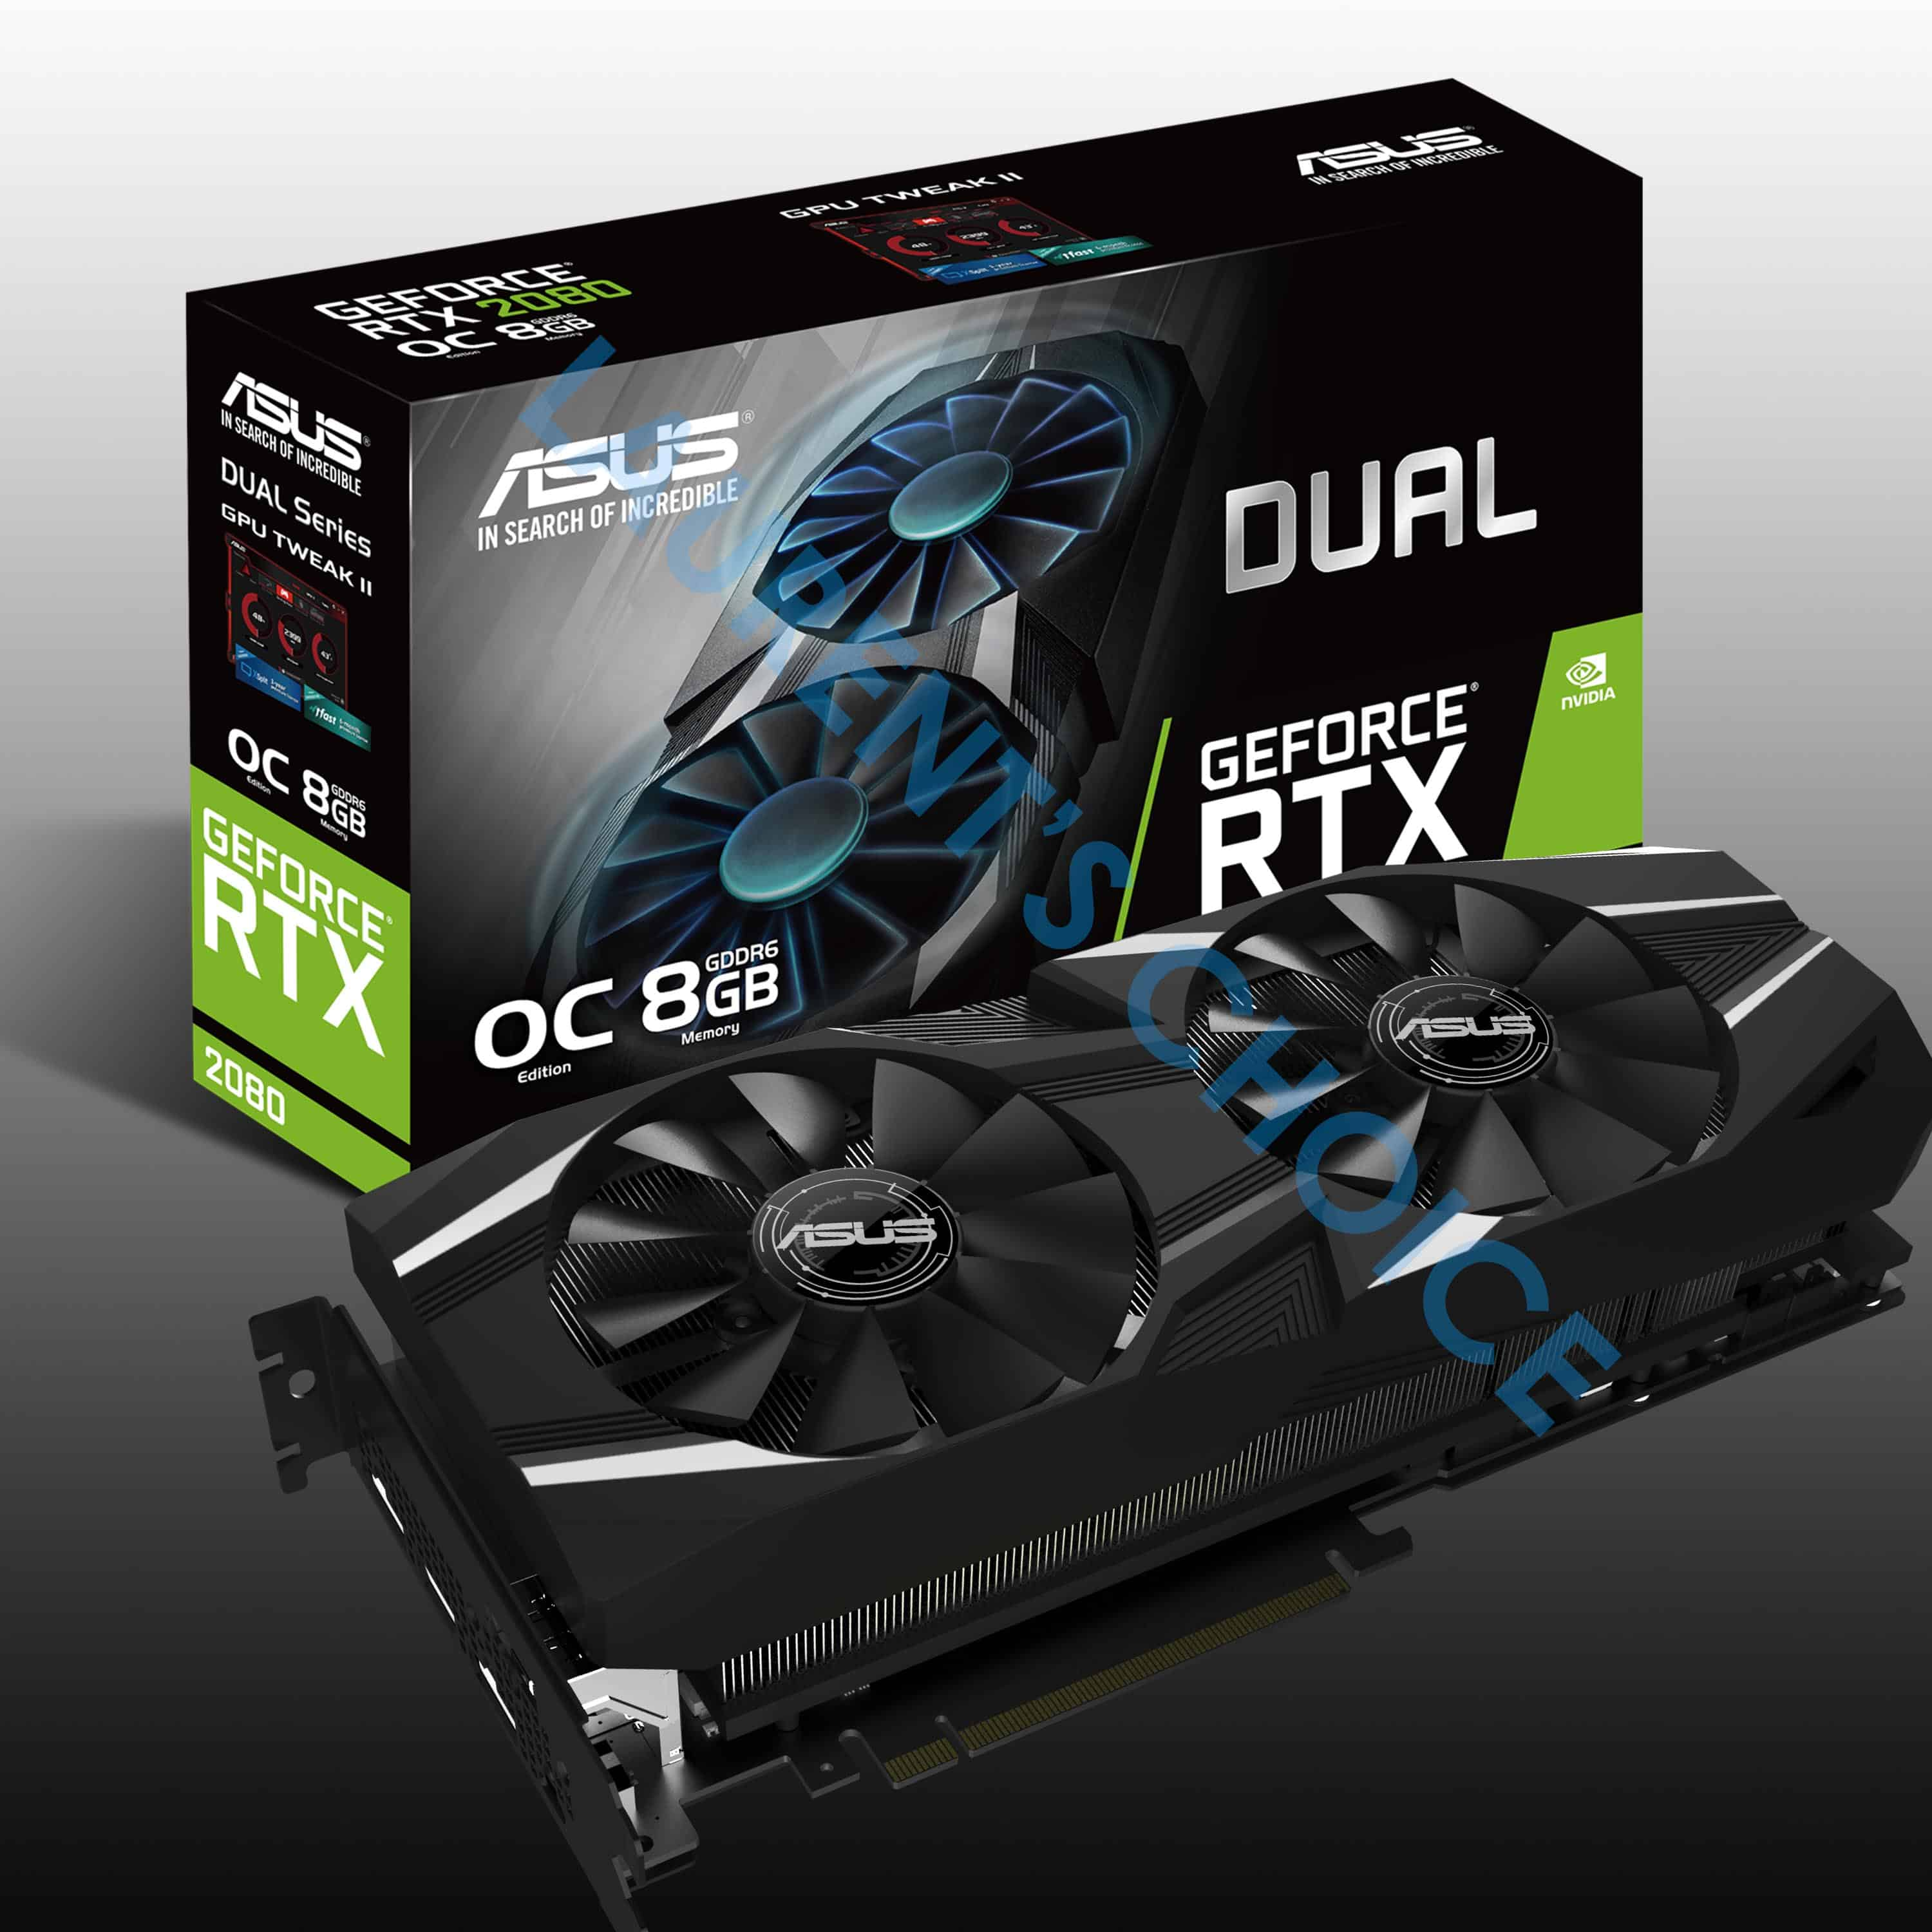 ASUS RTX 2080 DUAL